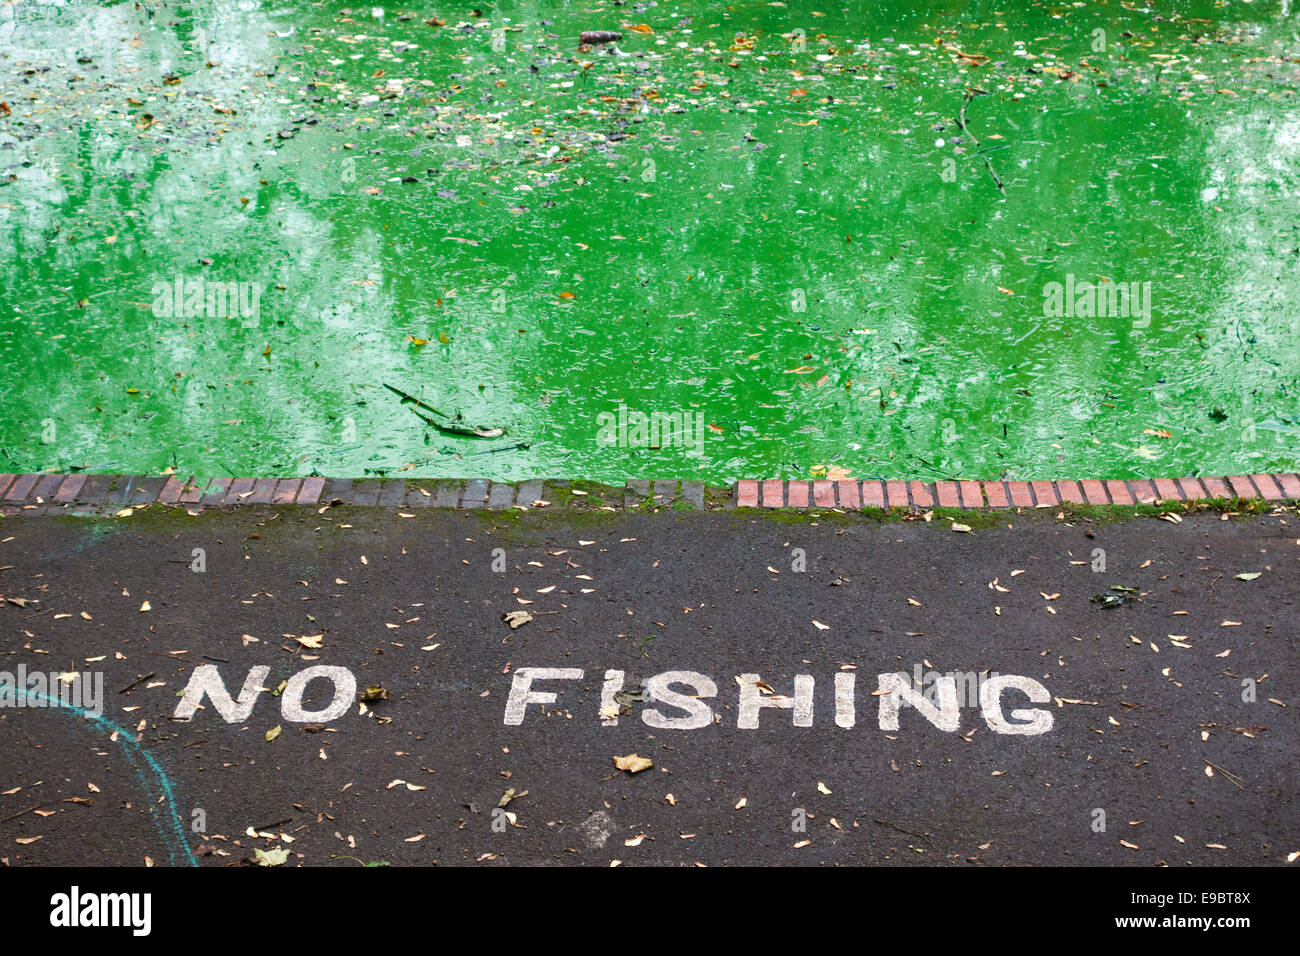 A thick scum of toxic blue-green algae (cyanobacteria) in a lake in a public park in Bristol, UK - Stock Image